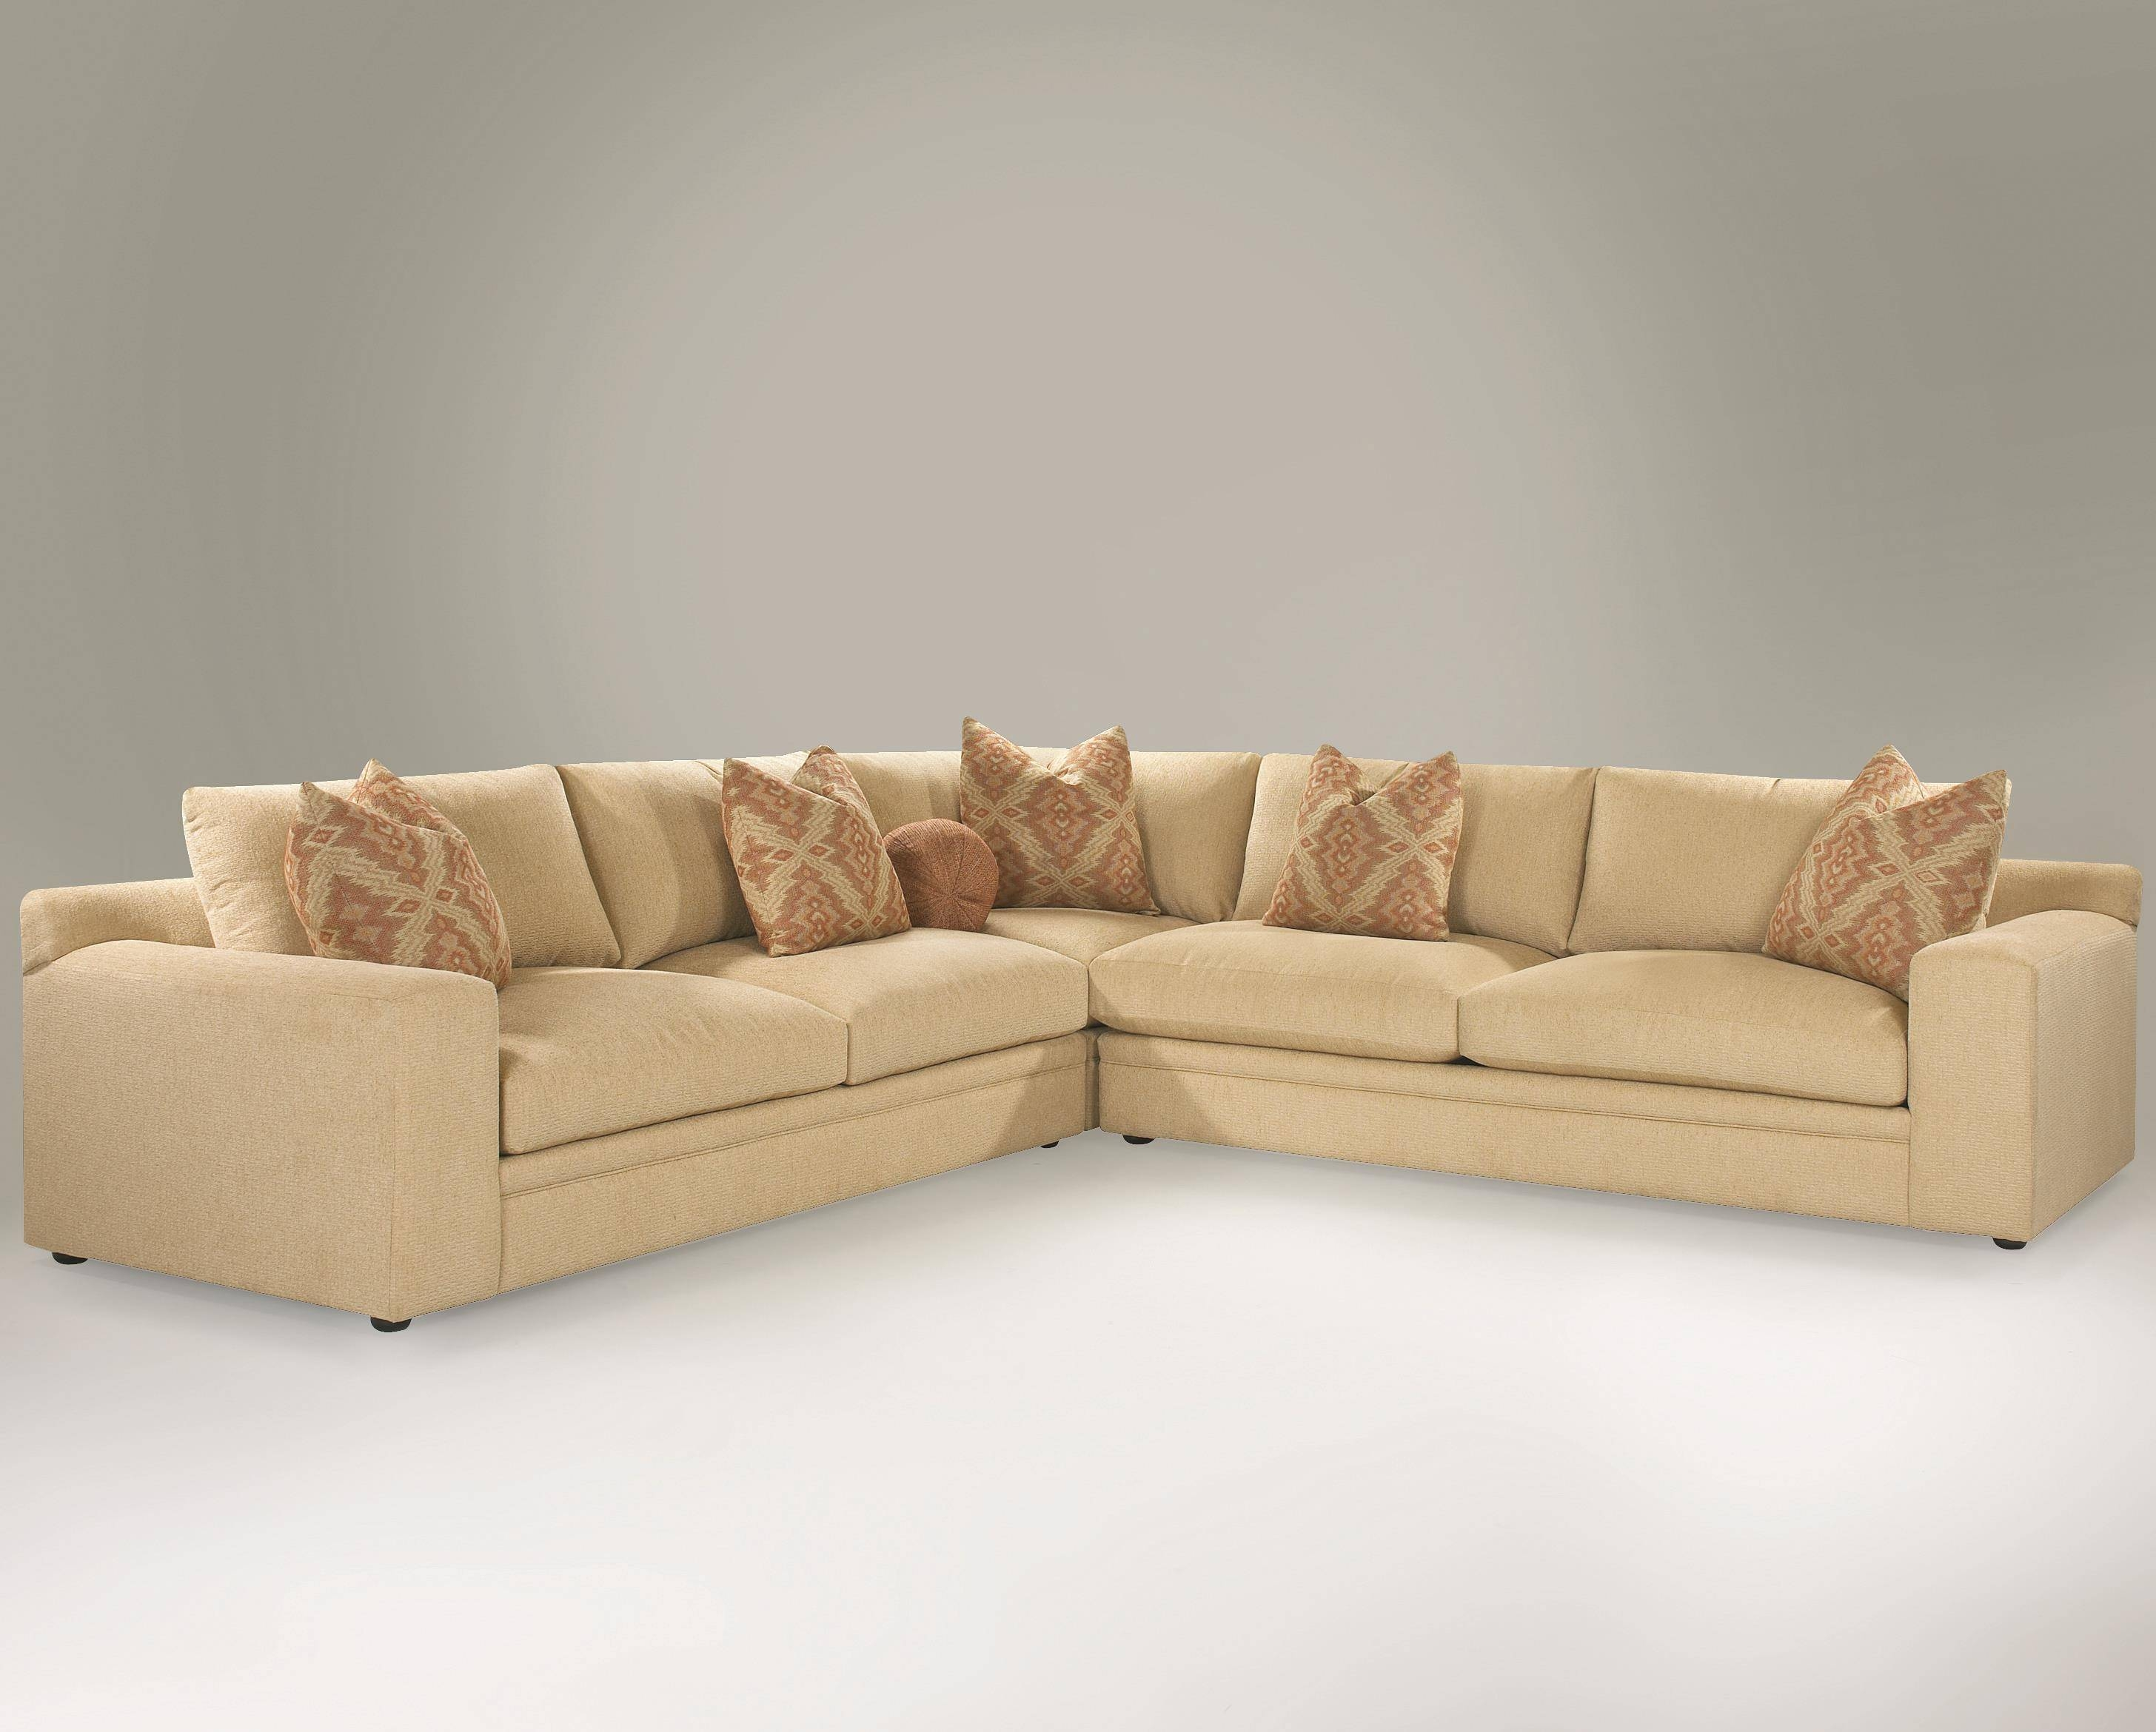 Casual 3-Piece Sectional Sofa With Track Arms And Loose Back throughout Loose Pillow Back Sofas (Image 1 of 15)